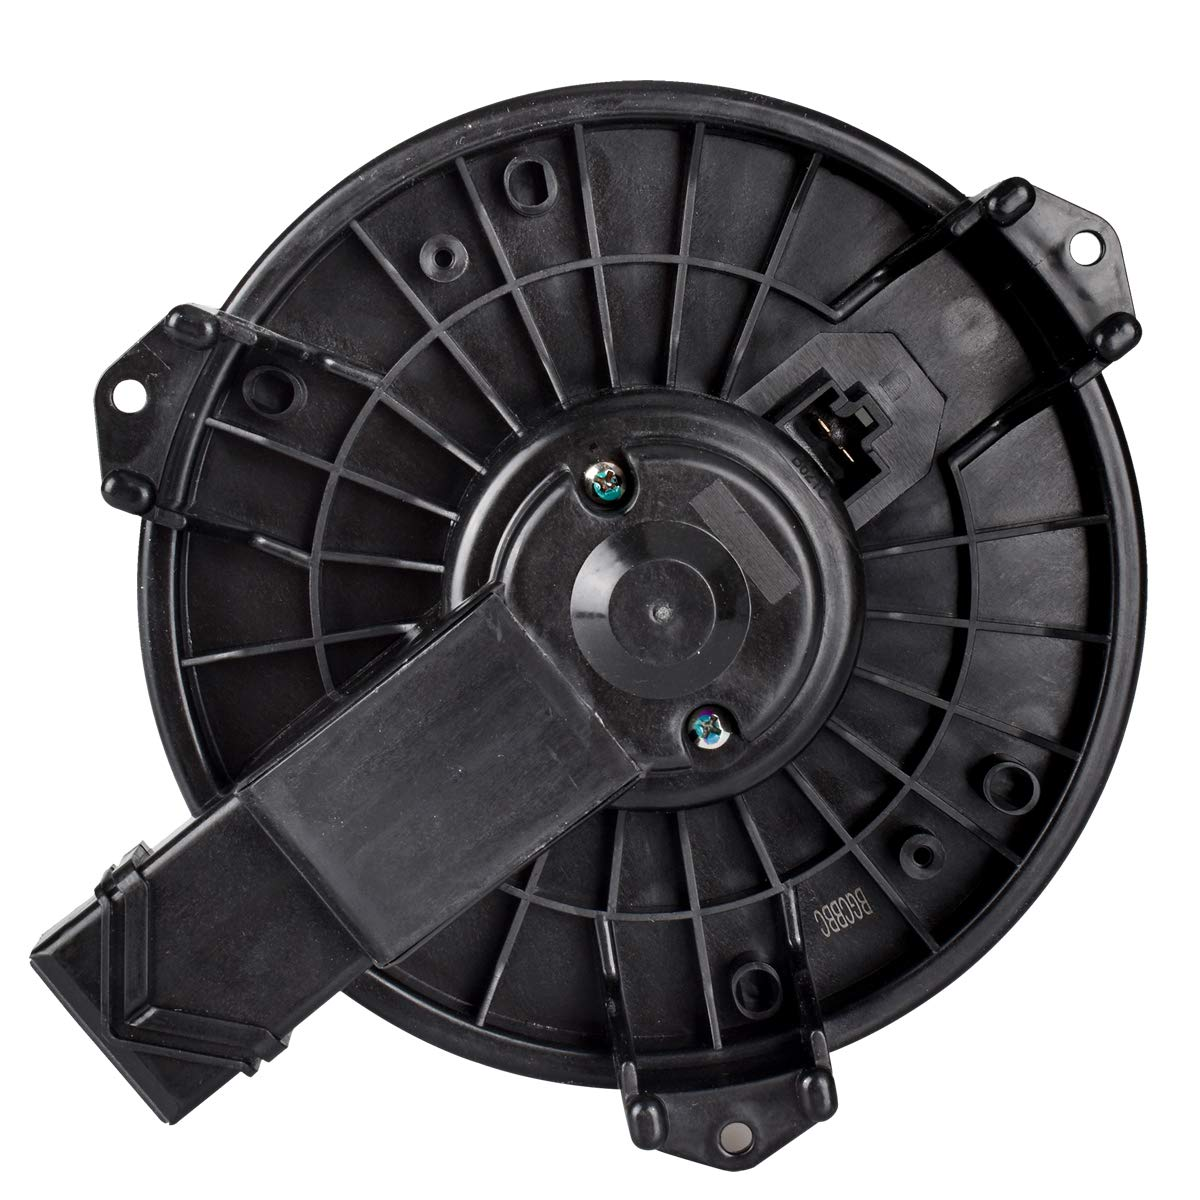 FAERSI ABS Plastic Heater Blower Motor with Fan Cage Compatible with 2006-2011 Honda Civic//2006-2011 Acura CSX//2007-2010 Jeep Wrangler